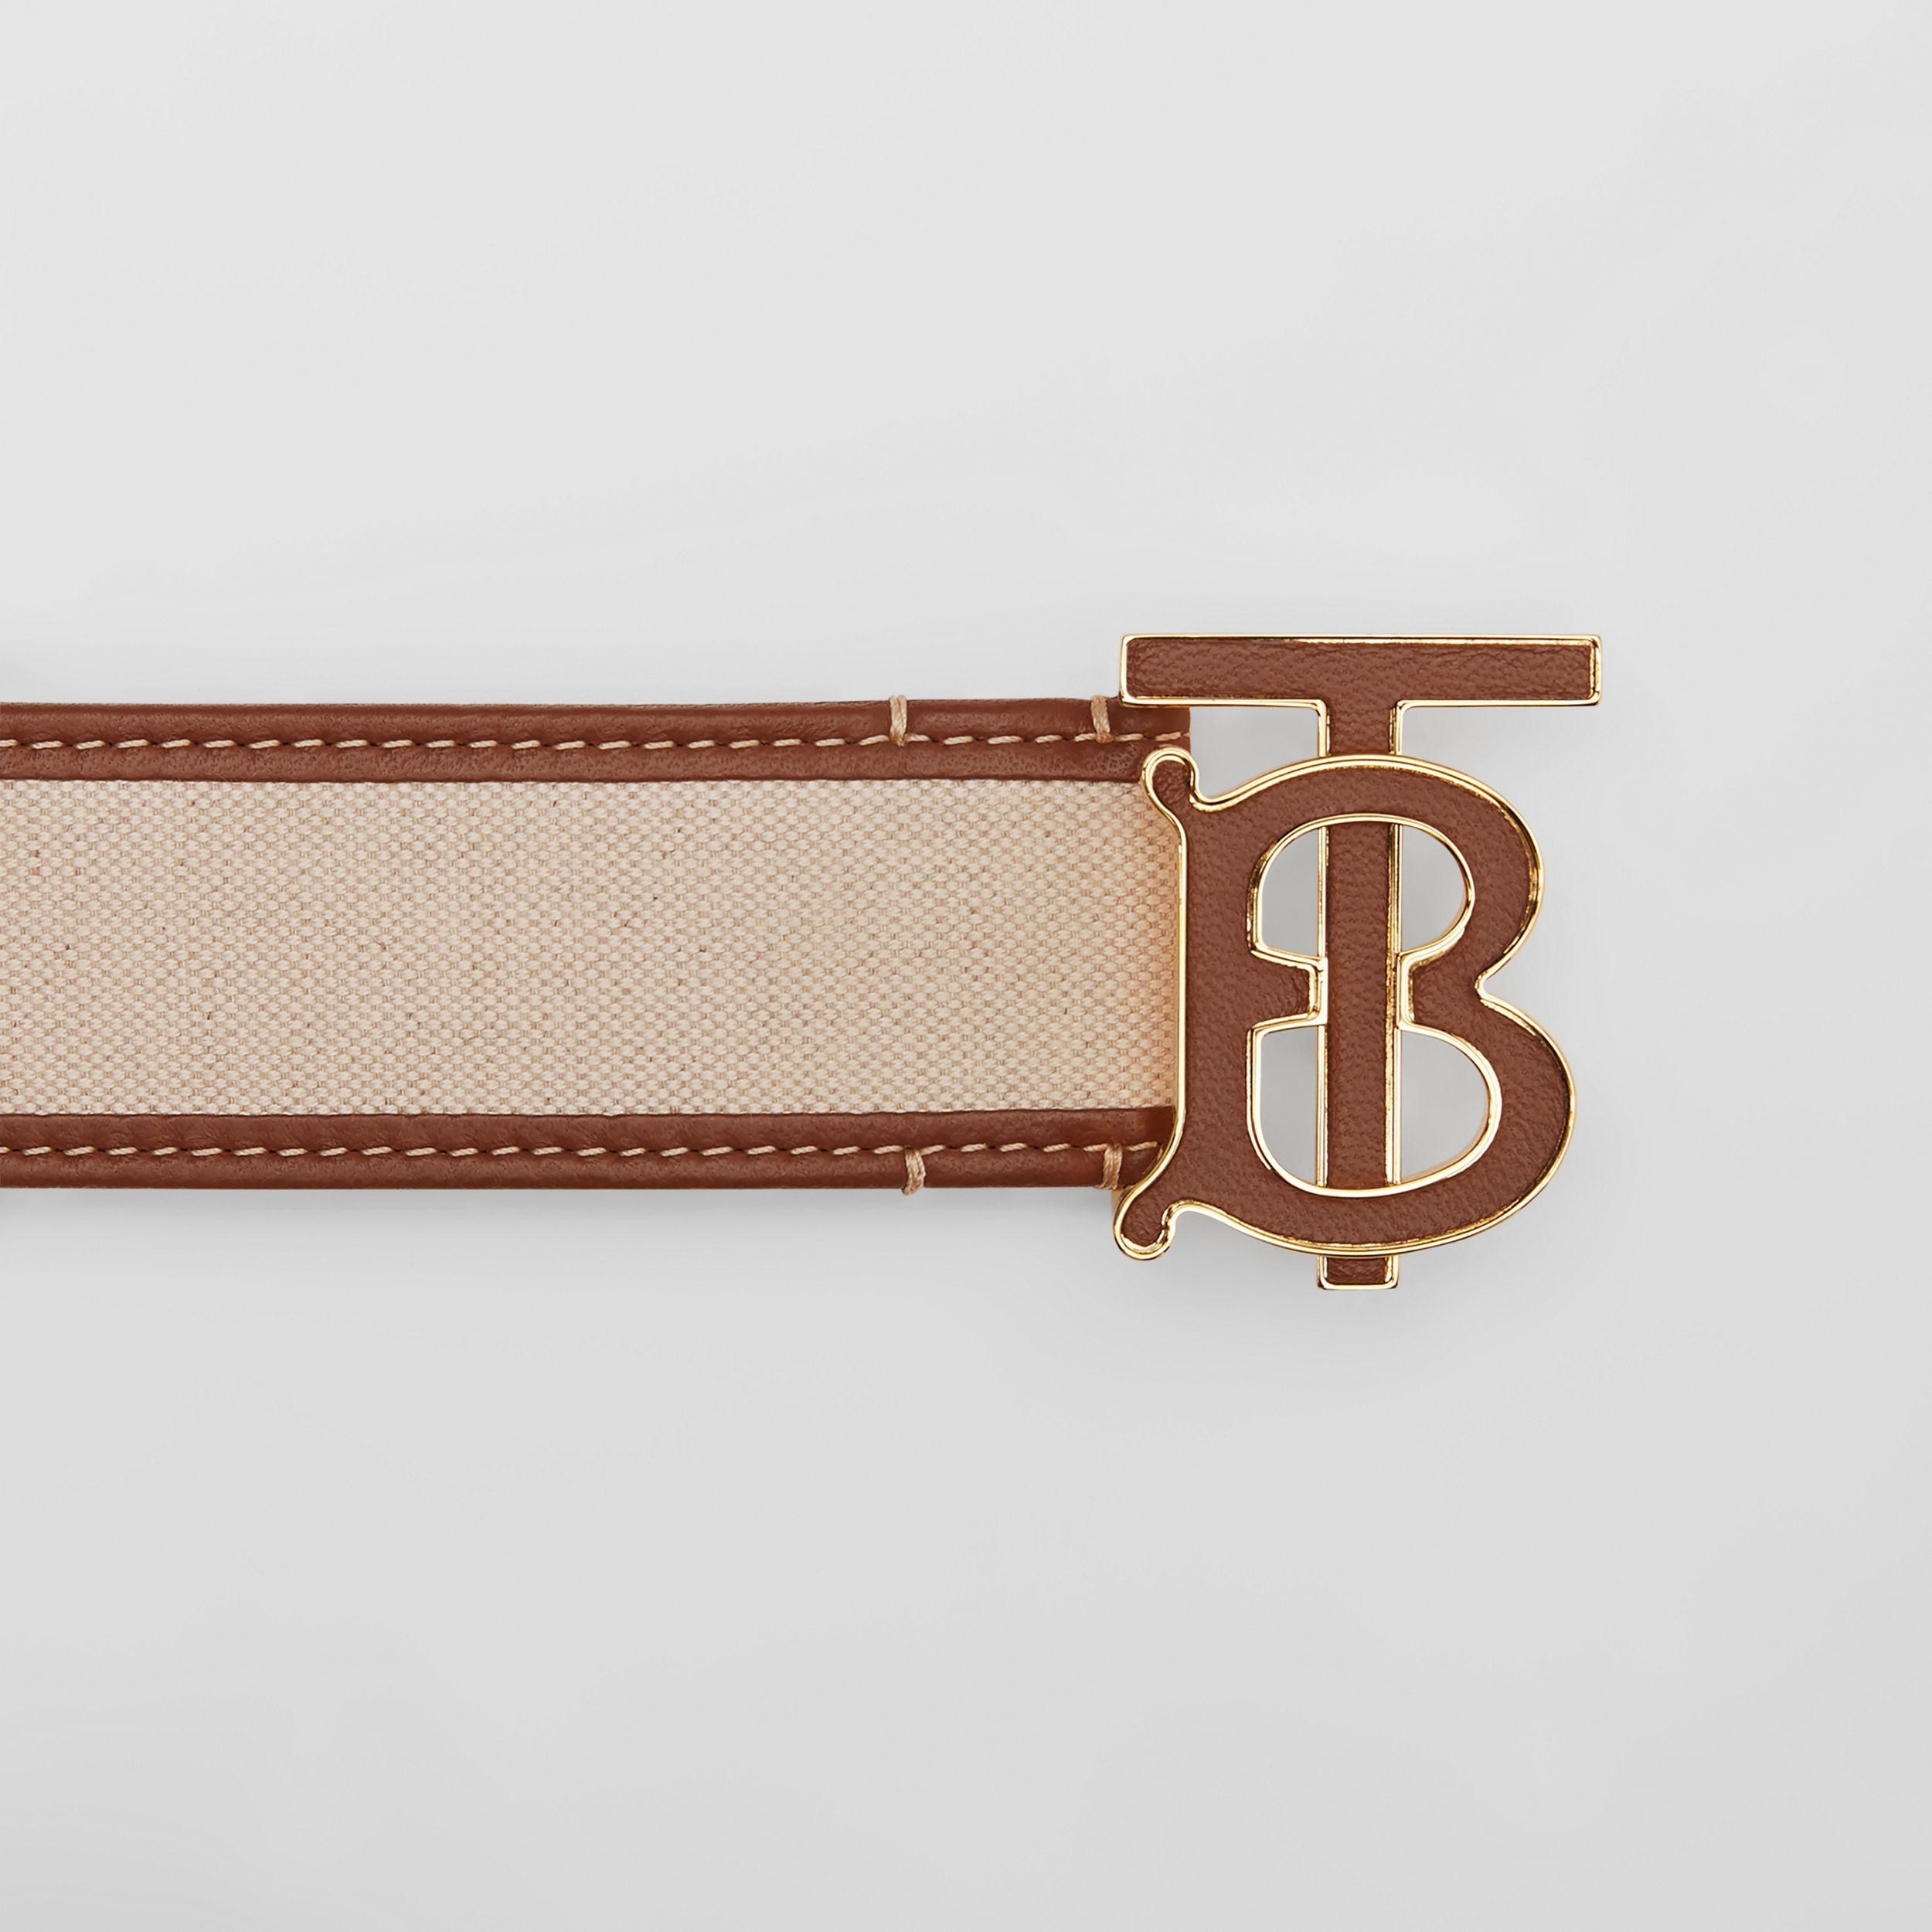 Monogram Motif Canvas and Leather Belt in Natural - Women | Burberry - 2